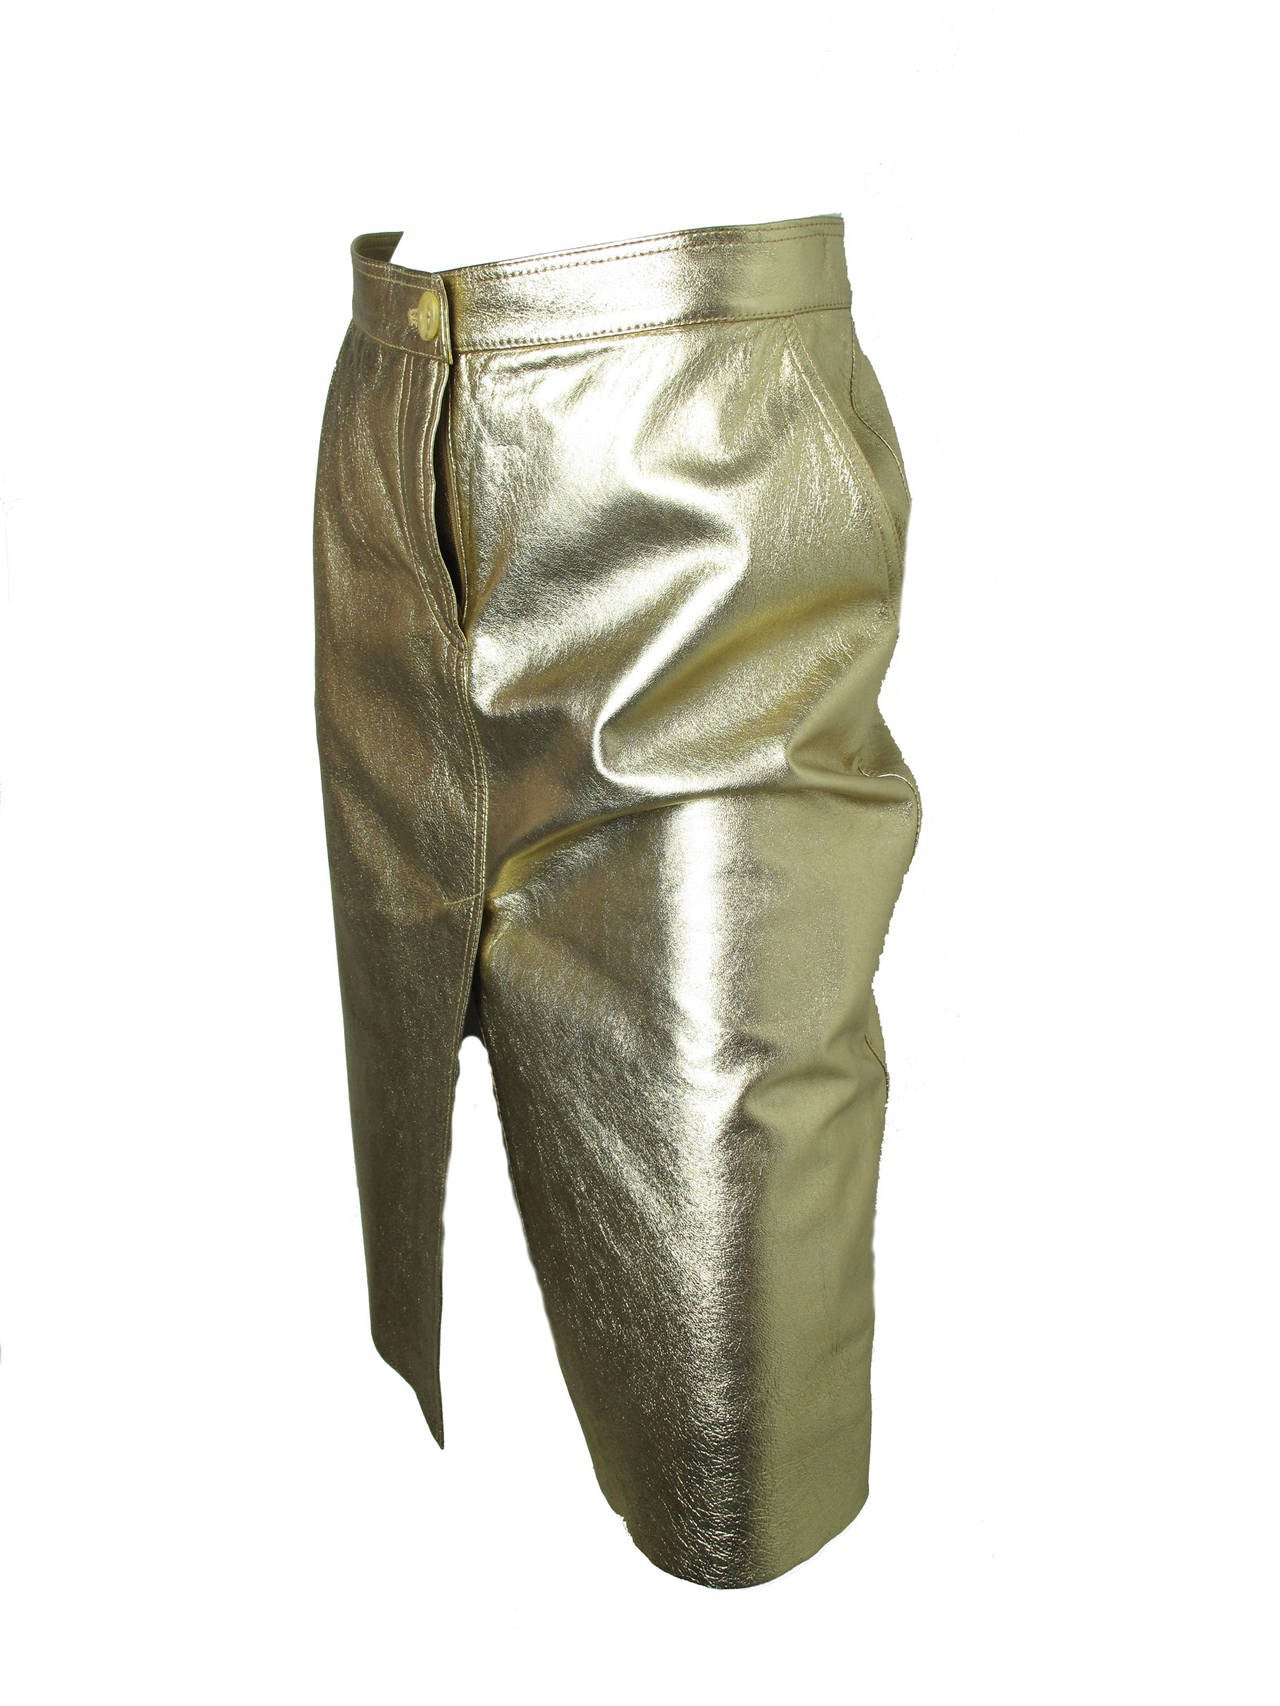 "Moschino gold leather (sheep skin) metallic skirt.  Two front pockets.  32"" waist, 36"" hips, 25"" length. Condition: Excellent.   Size 8"